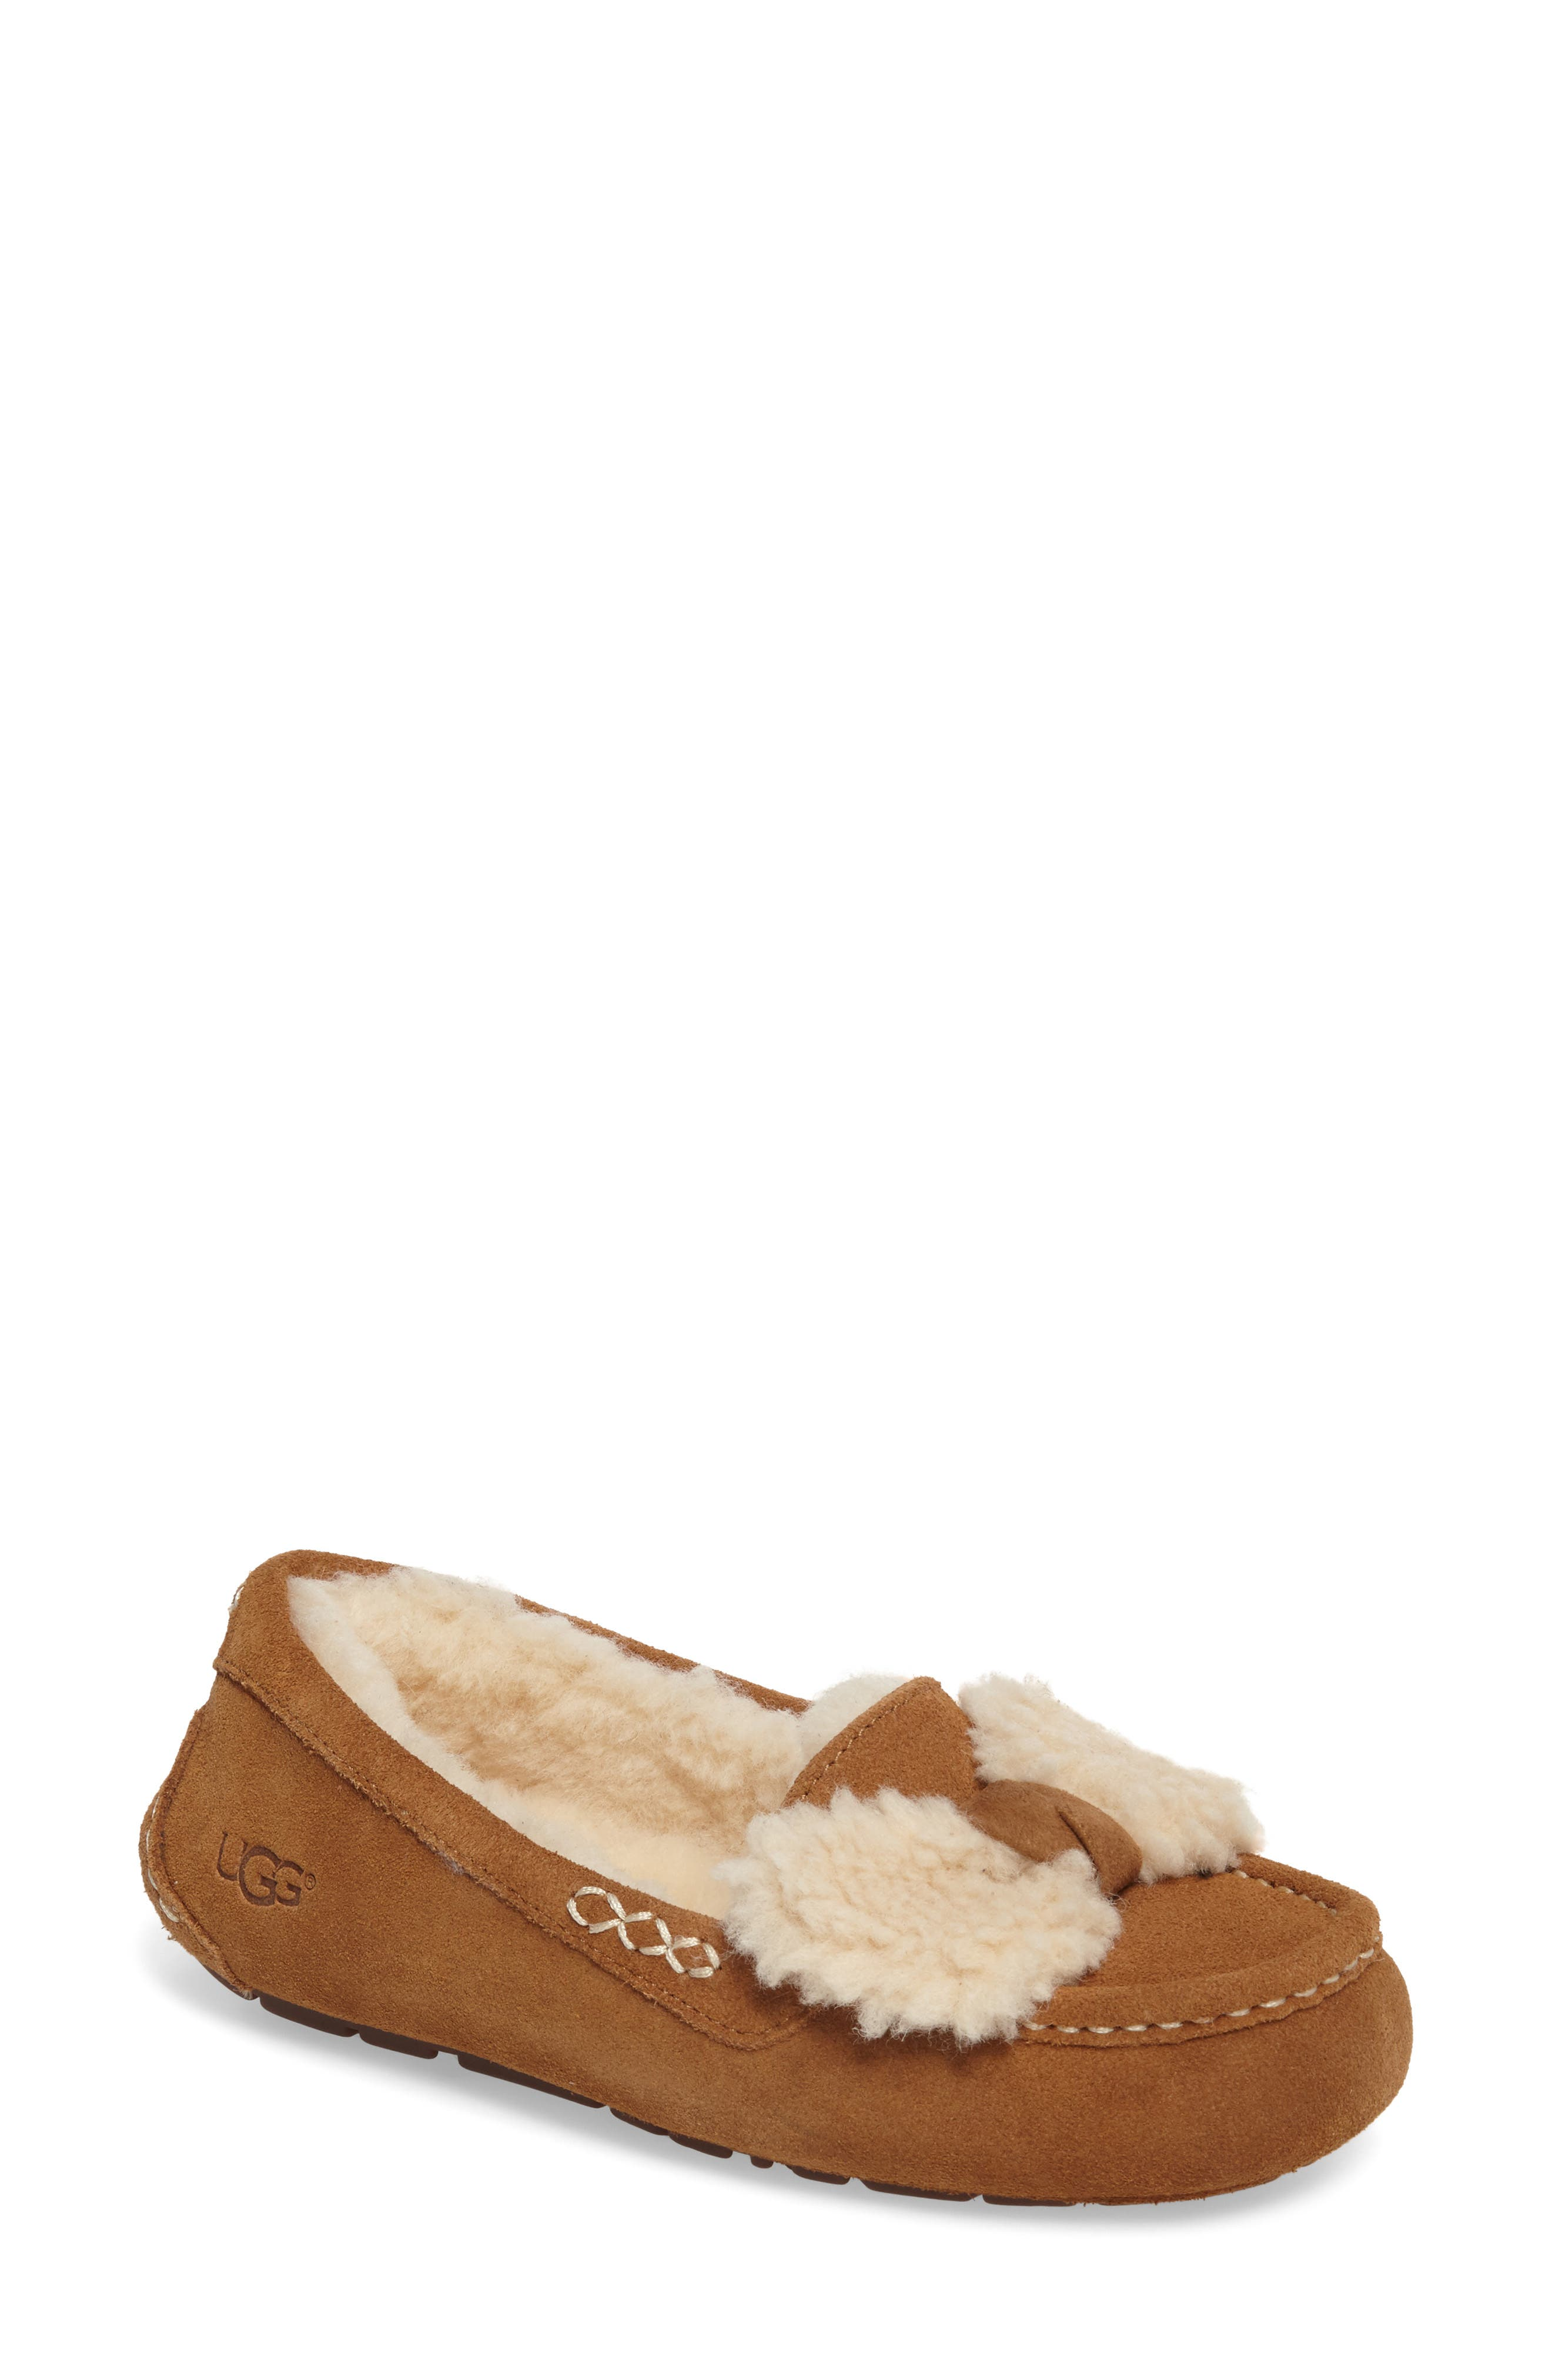 Ansley Bow Slipper,                             Main thumbnail 1, color,                             Chestnut Suede